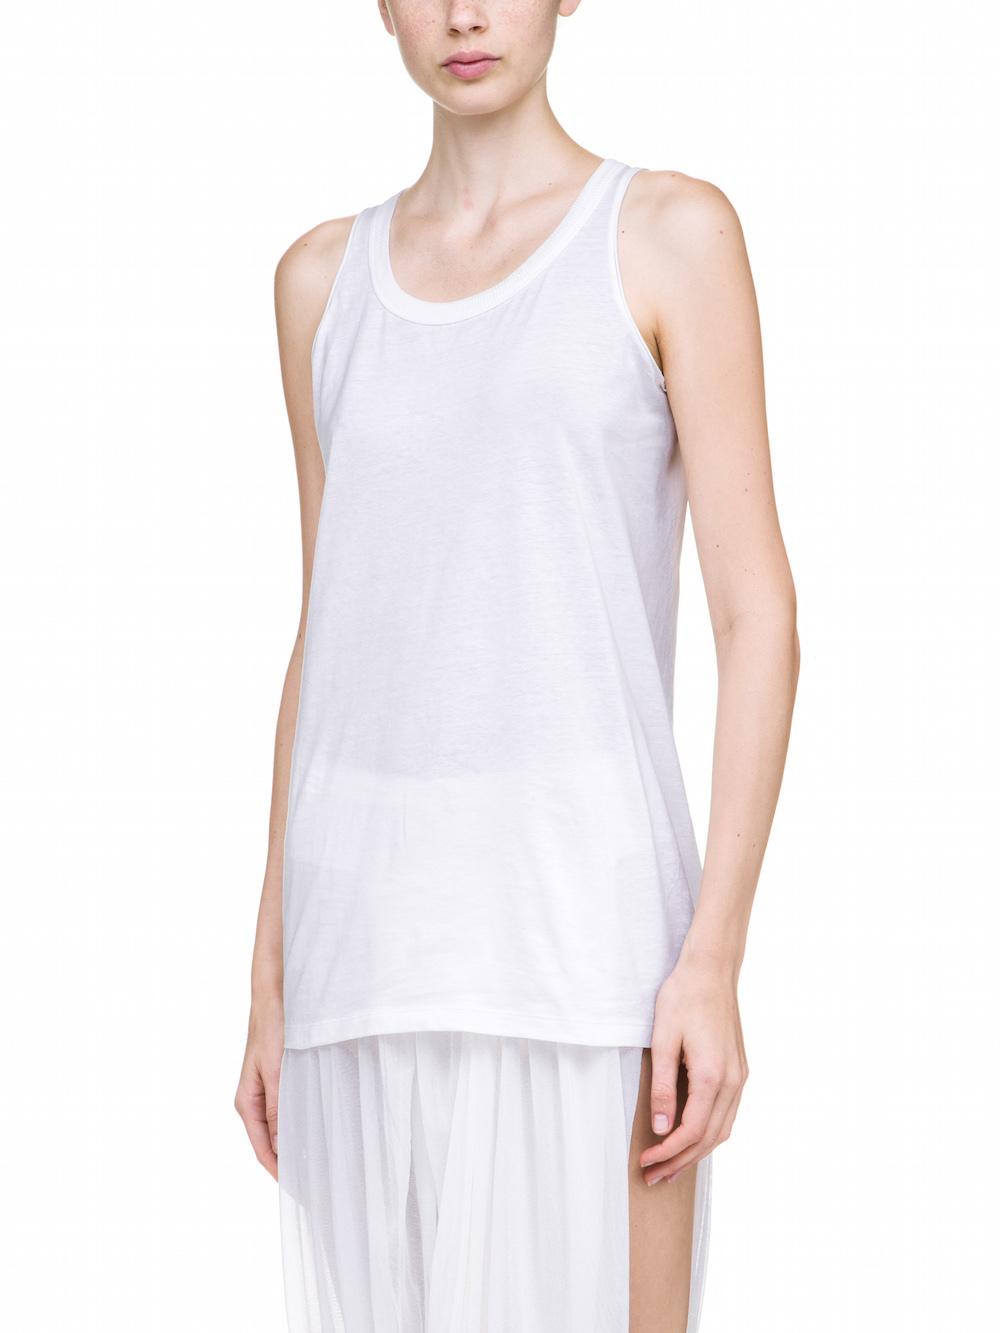 RICK OWENS TANK TOP IN CHALK WHITE MEDIUM-WEIGHT COTTON JERSEY